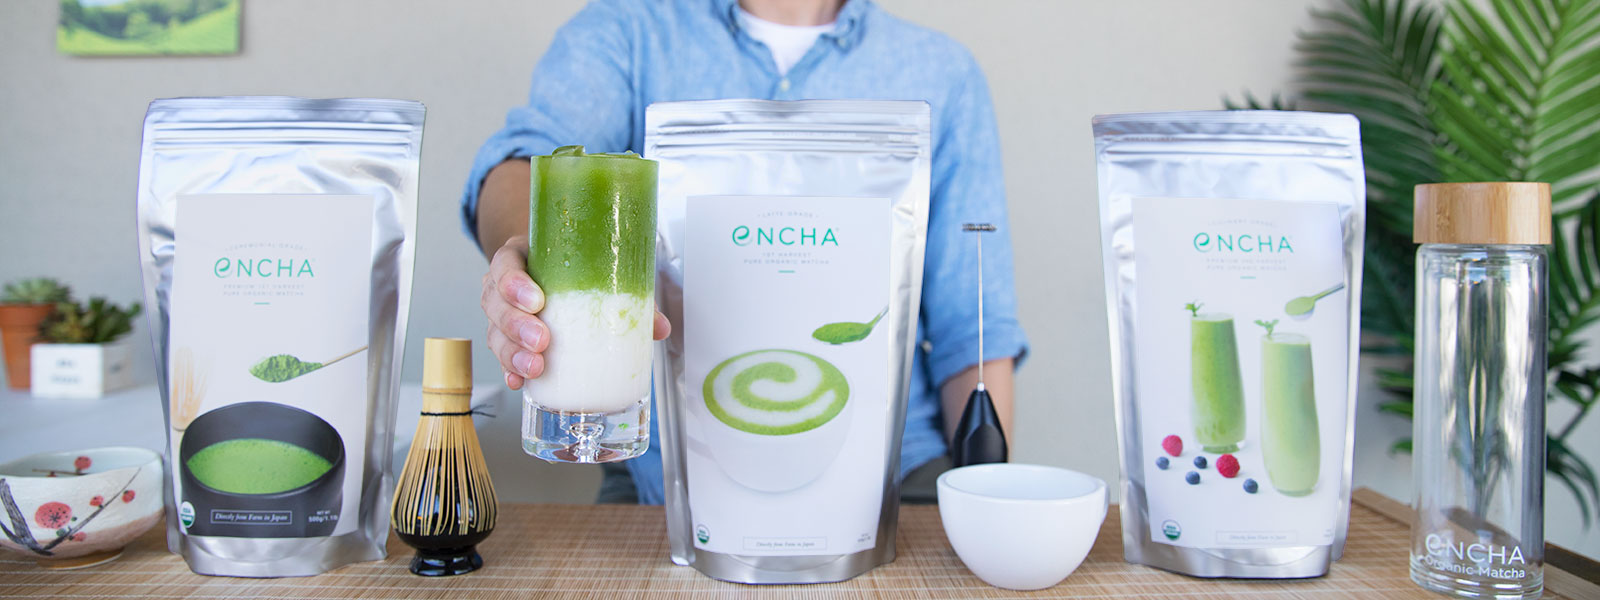 Matcha wholesale bulk from Encha Organic Matcha